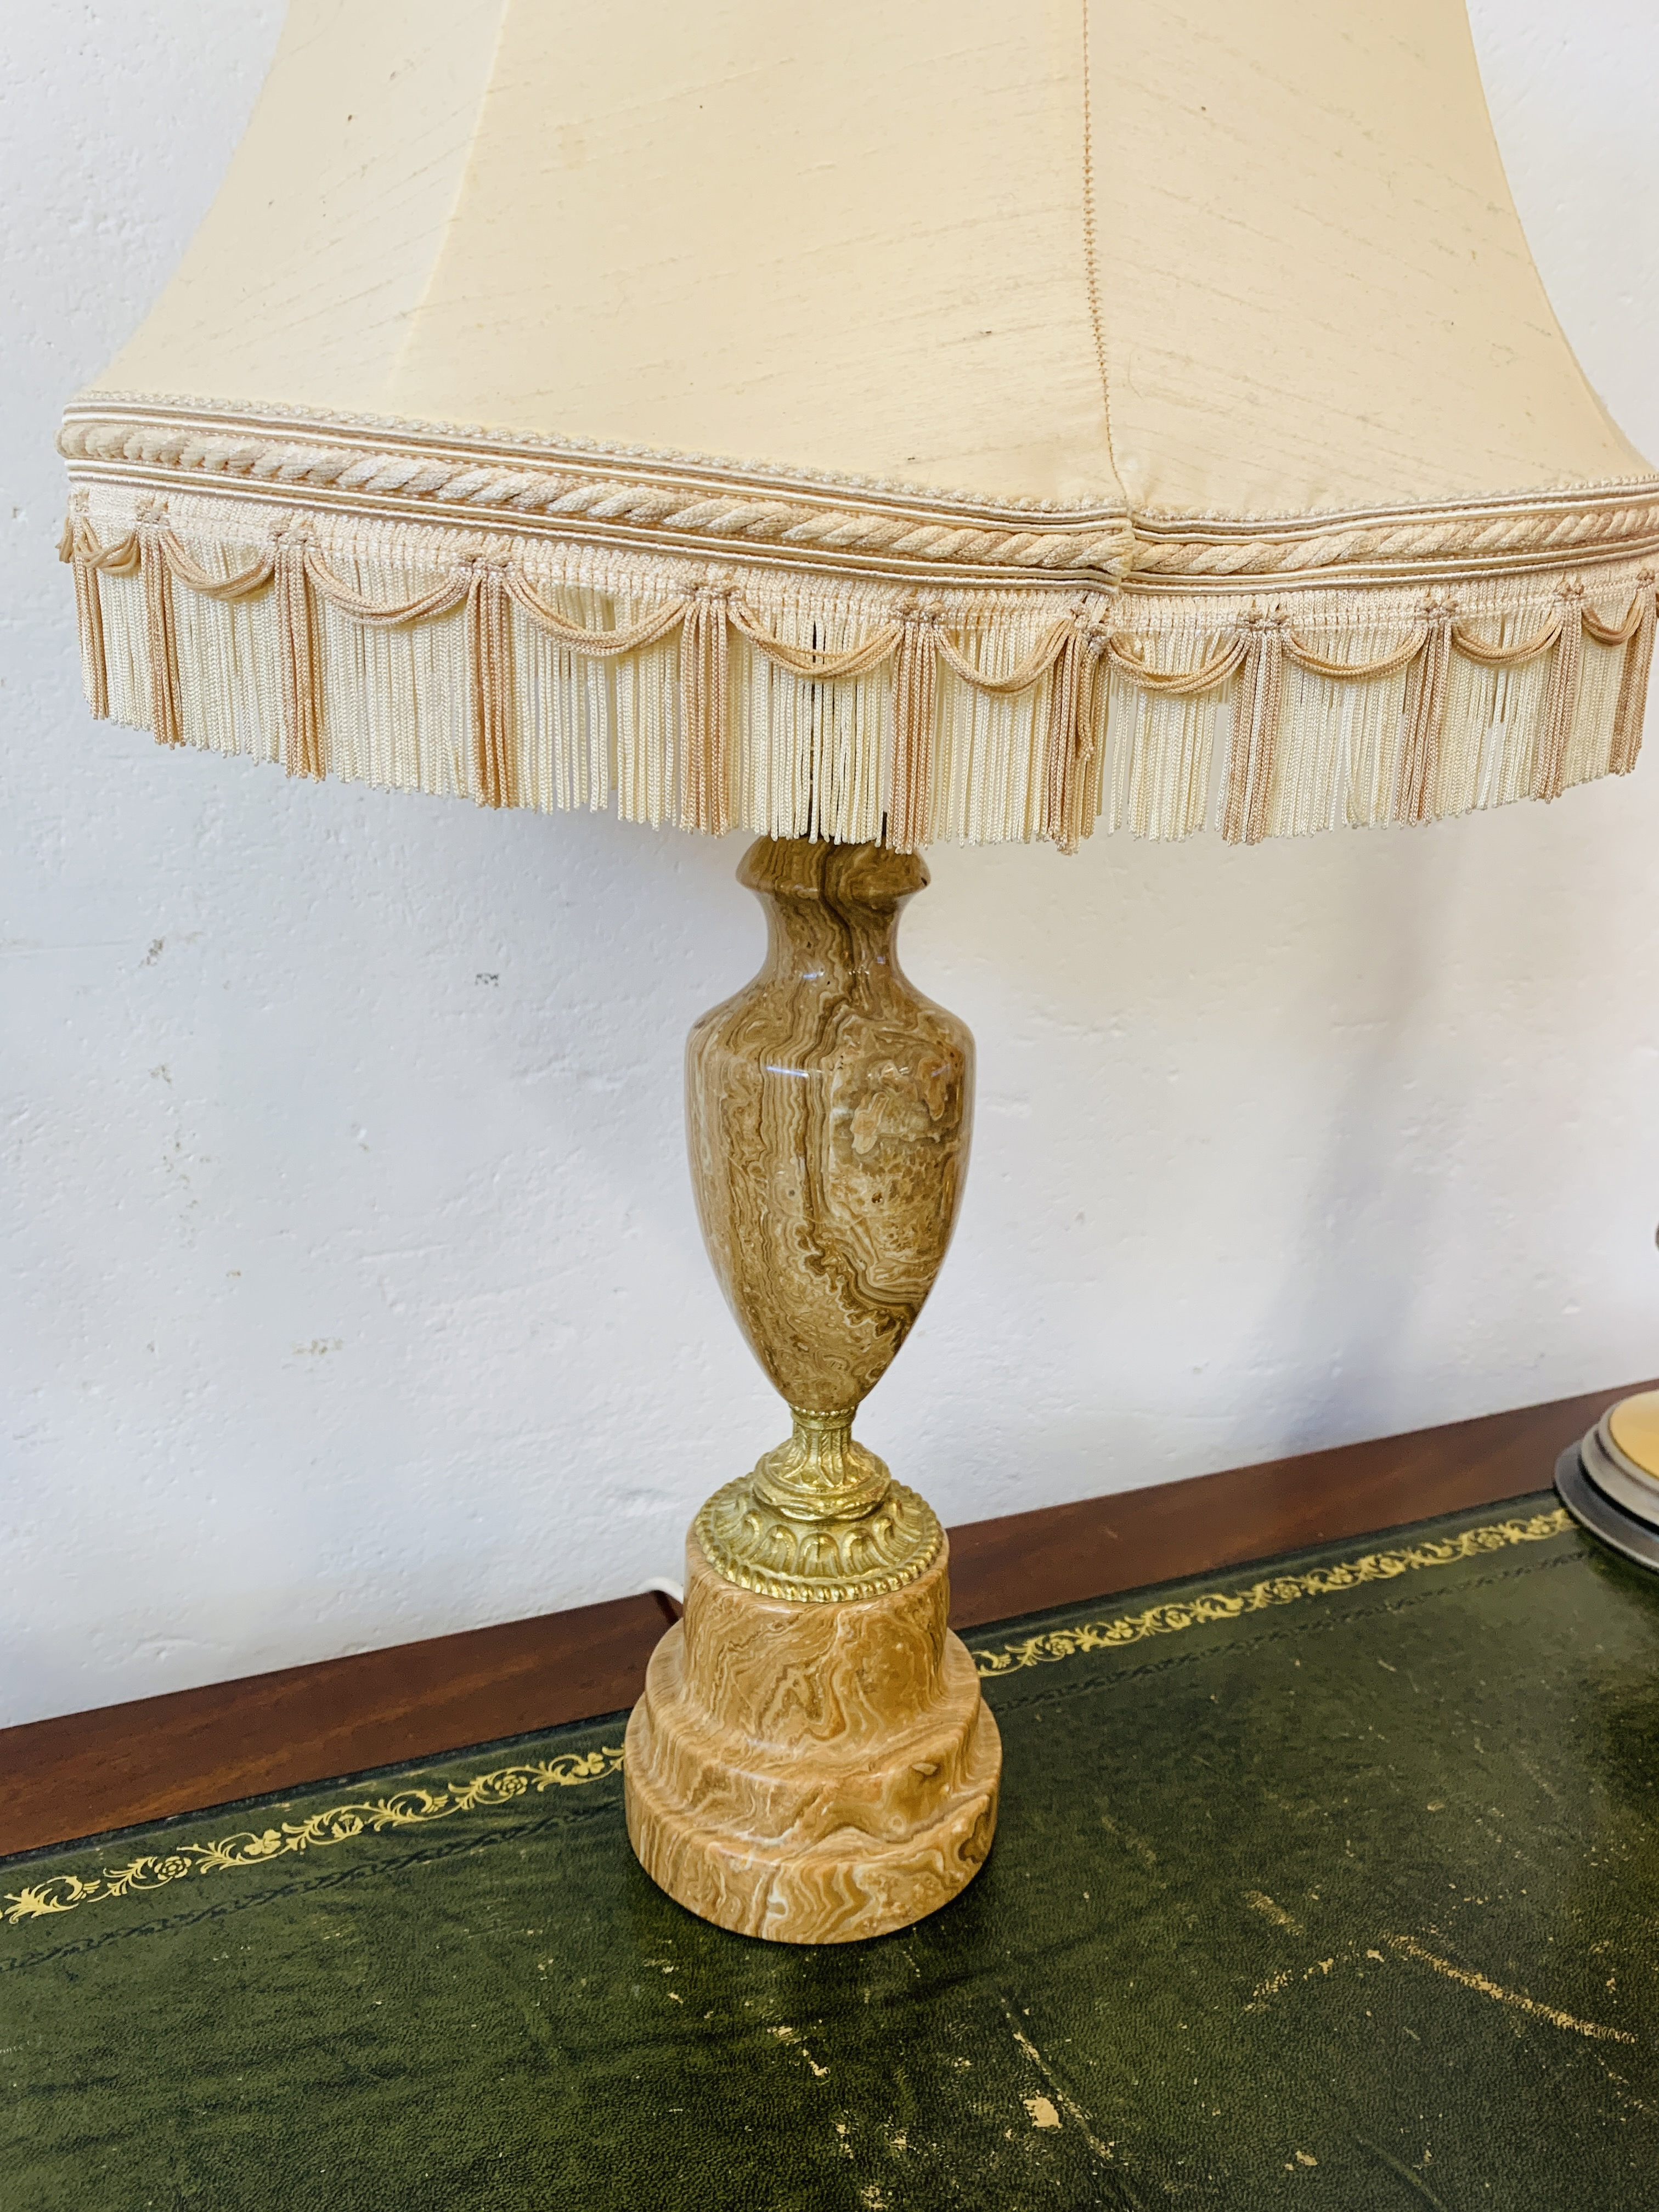 A GOOD QUALITY MARBLE TABLE LAMP ALONG WITH A PAIR OF MODERN POLISHED METAL TABLE LAMPS - SOLD AS - Image 10 of 12